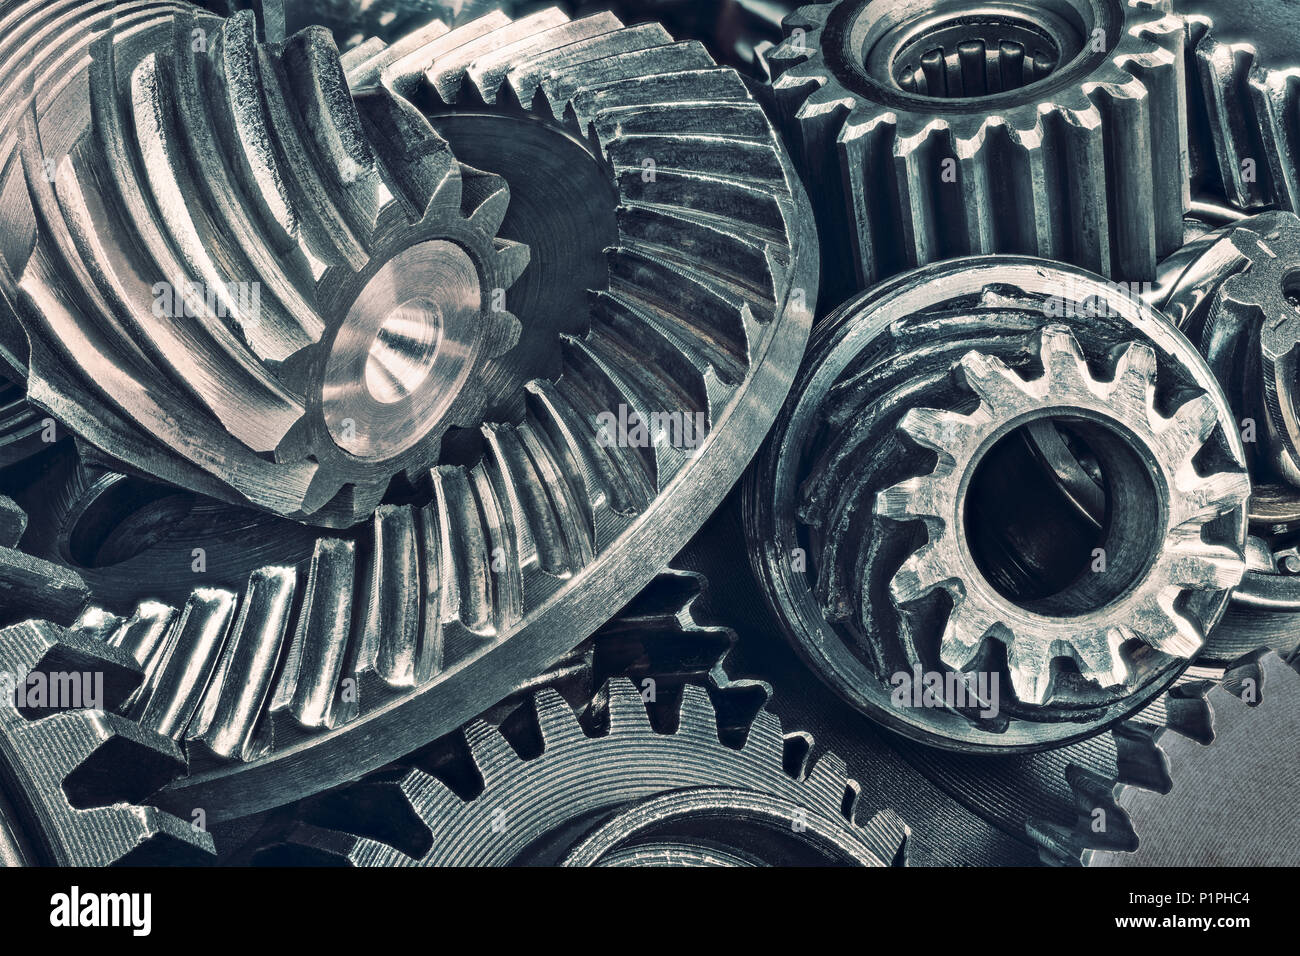 Close-up of various steel gear wheels. Cogged parts in duplex toning. Abstract technical background from the pile of metallic cogwheels. Quality idea. - Stock Image